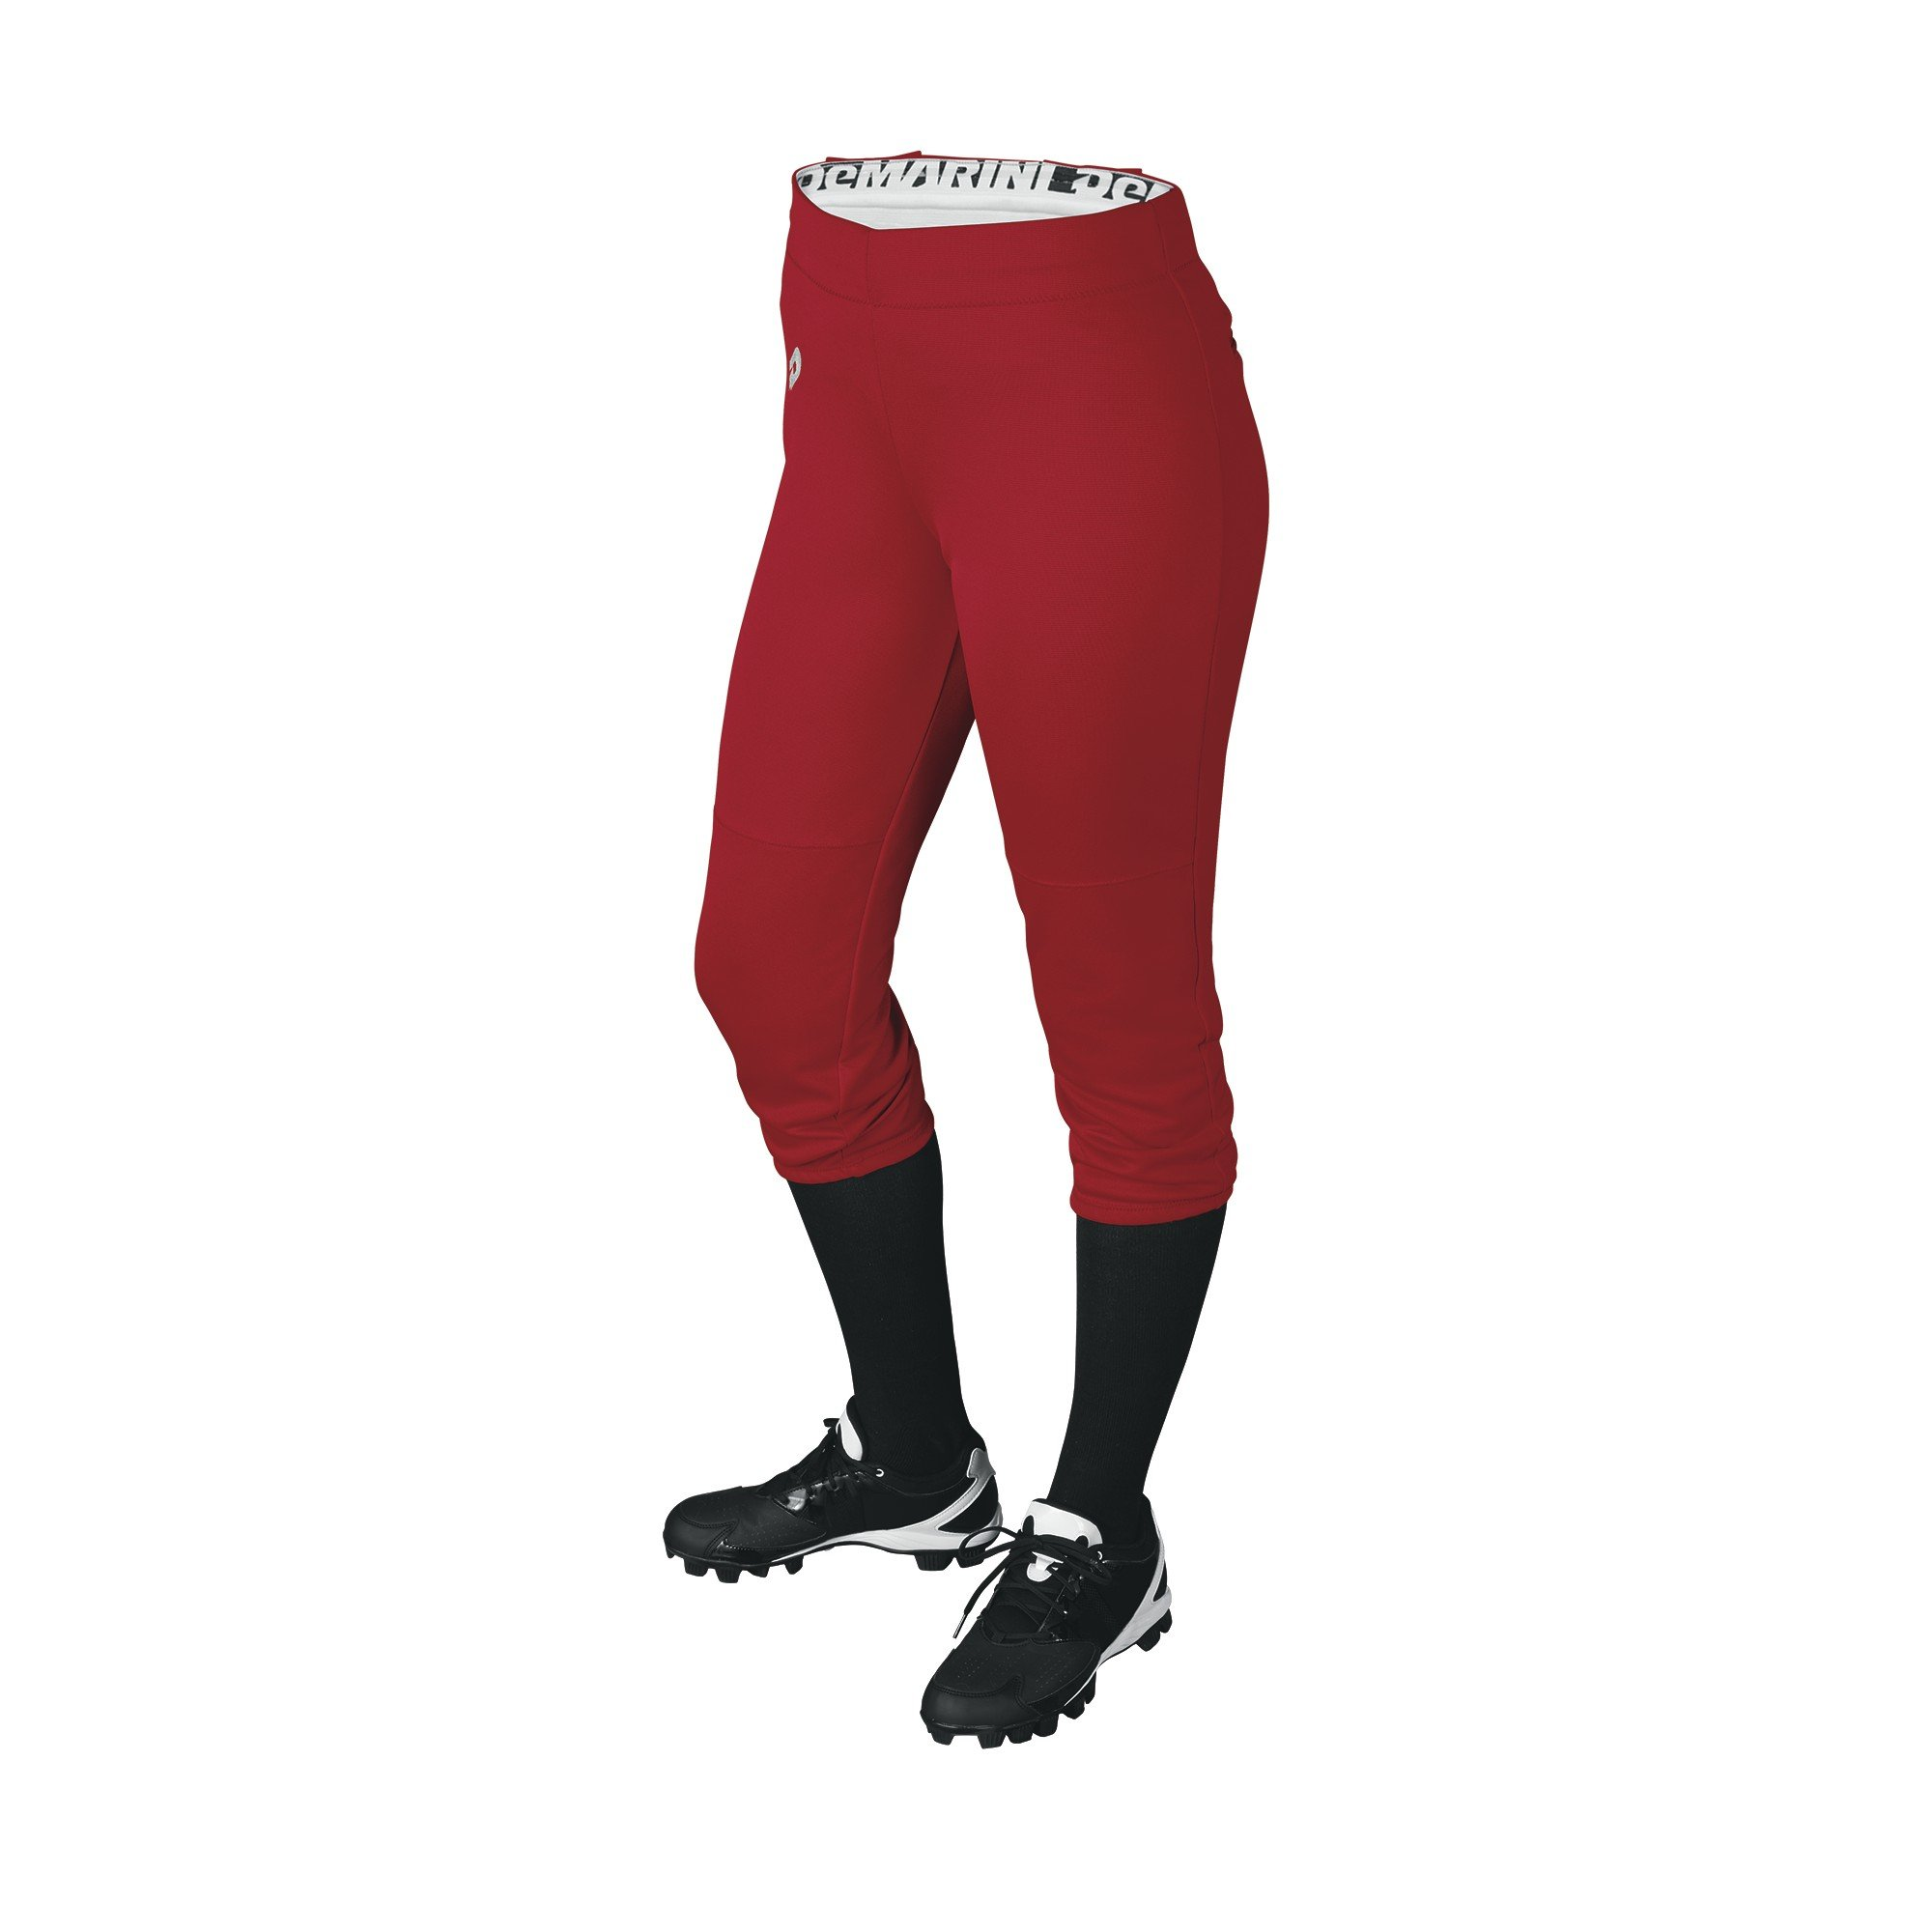 DeMarini Womens Sleek Pull Up Pant, Scarlet, Small by DeMarini (Image #1)